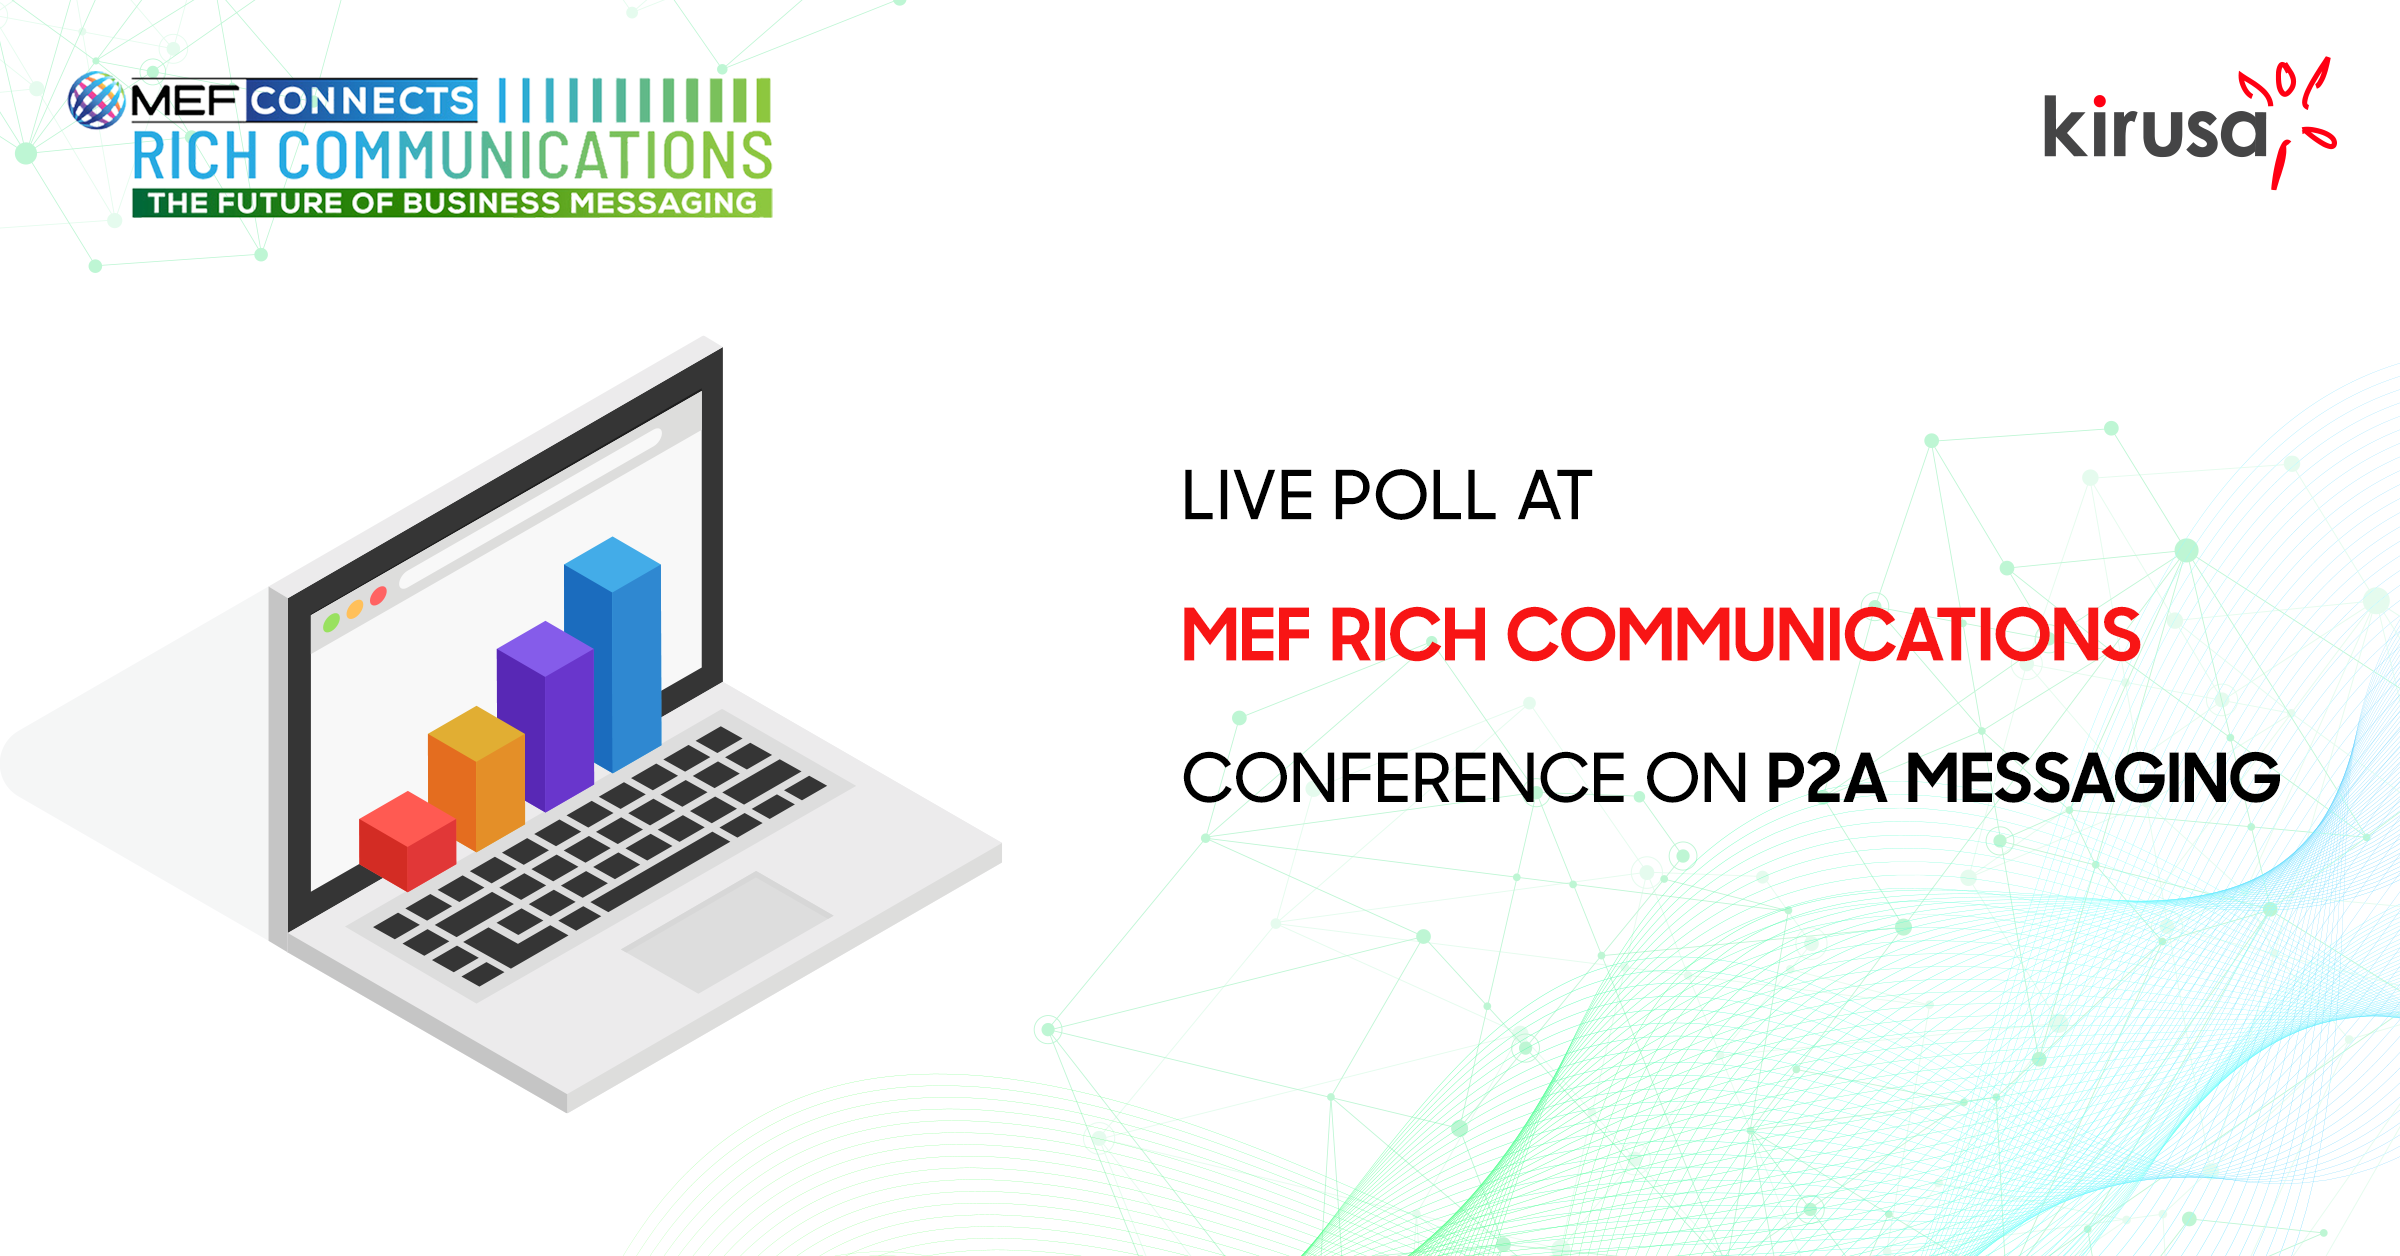 Live Poll At Mef Rich Communications Conference On P2A Messaging